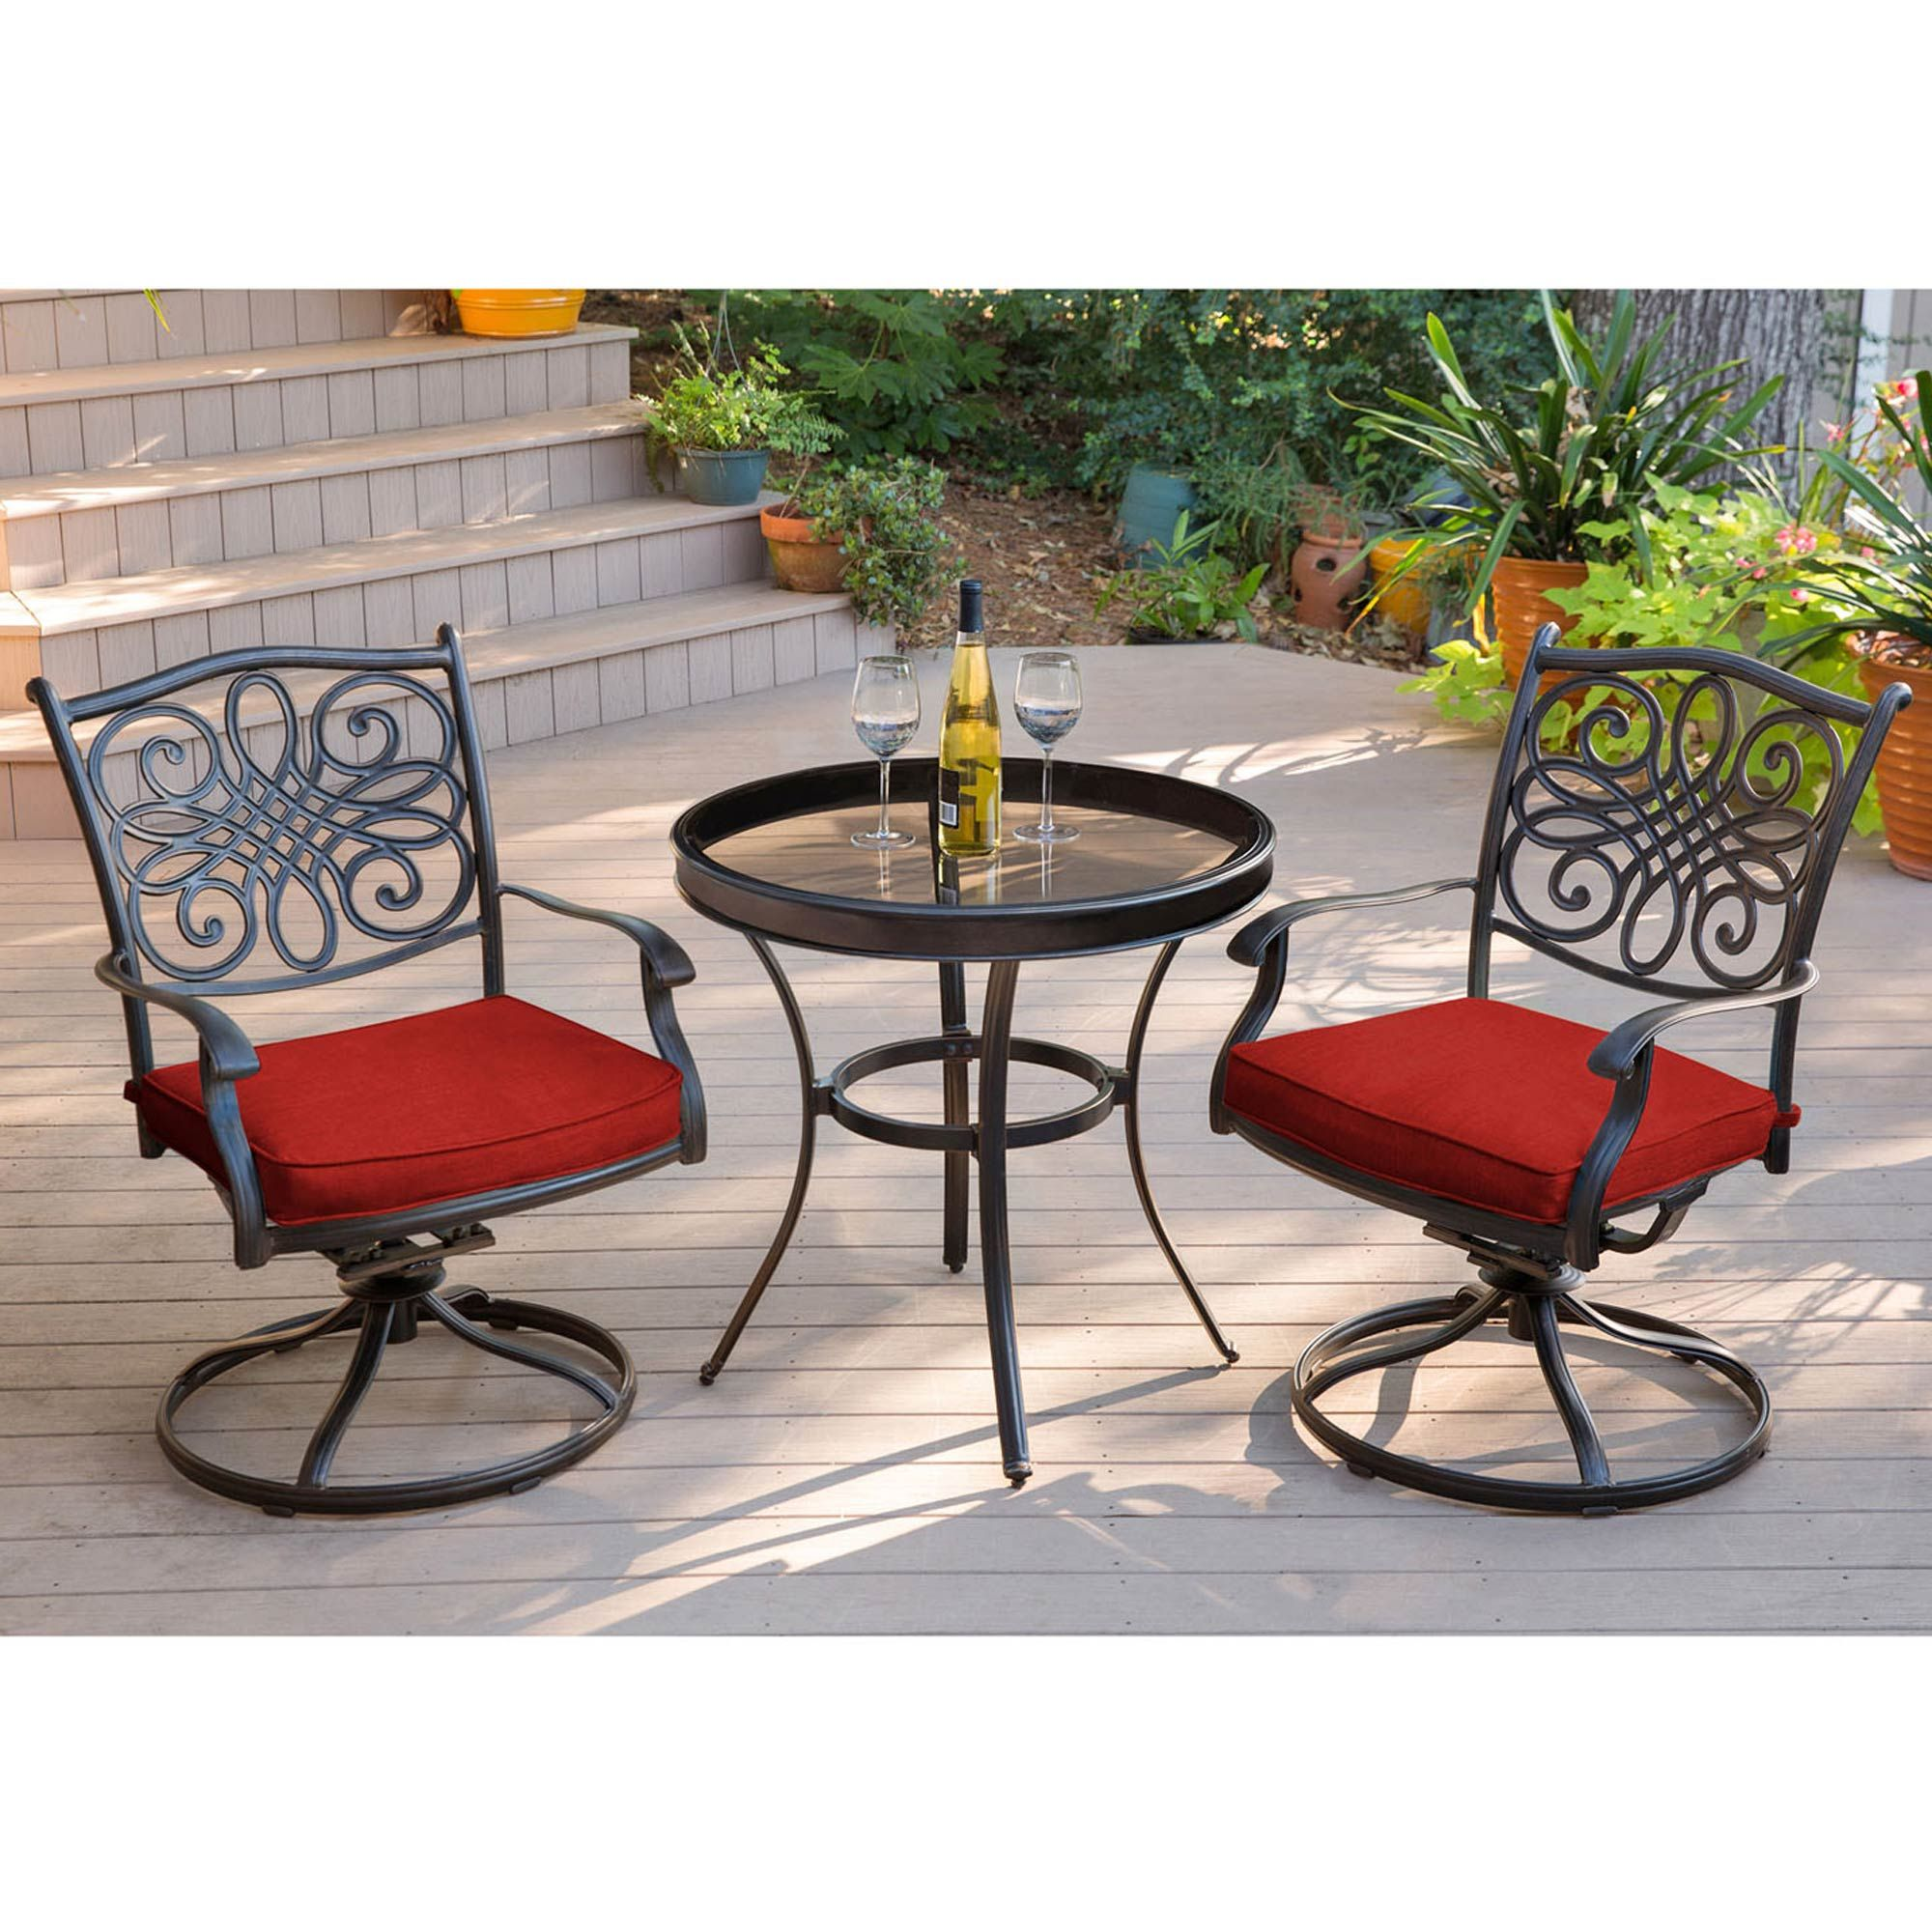 Phenomenal Hanover Traditions 3 Pc Swivel Bistro Set With Glass Top Caraccident5 Cool Chair Designs And Ideas Caraccident5Info